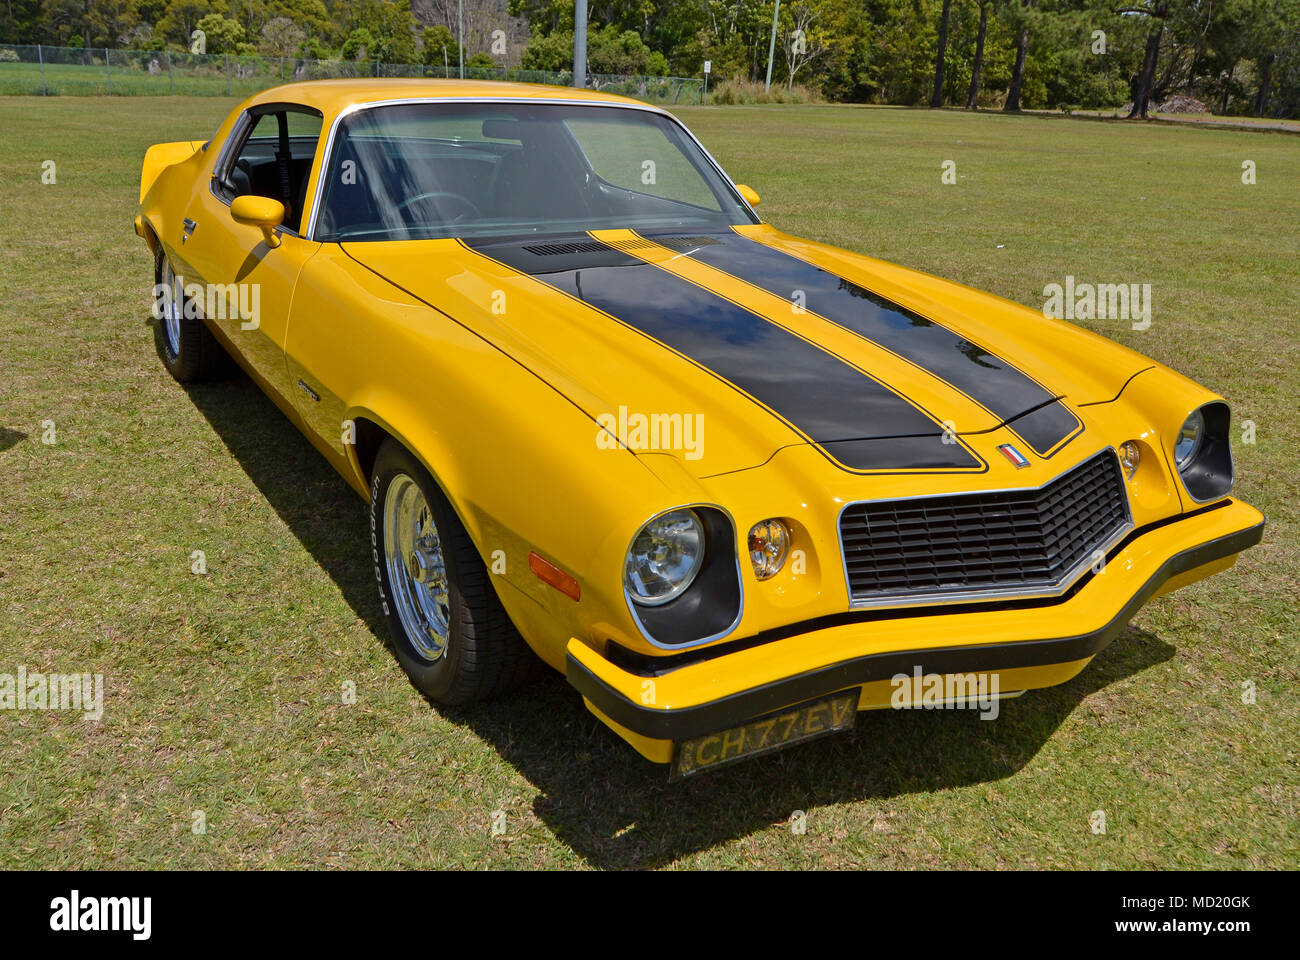 Camaro Black Stock Photos Amp Camaro Black Stock Images Alamy